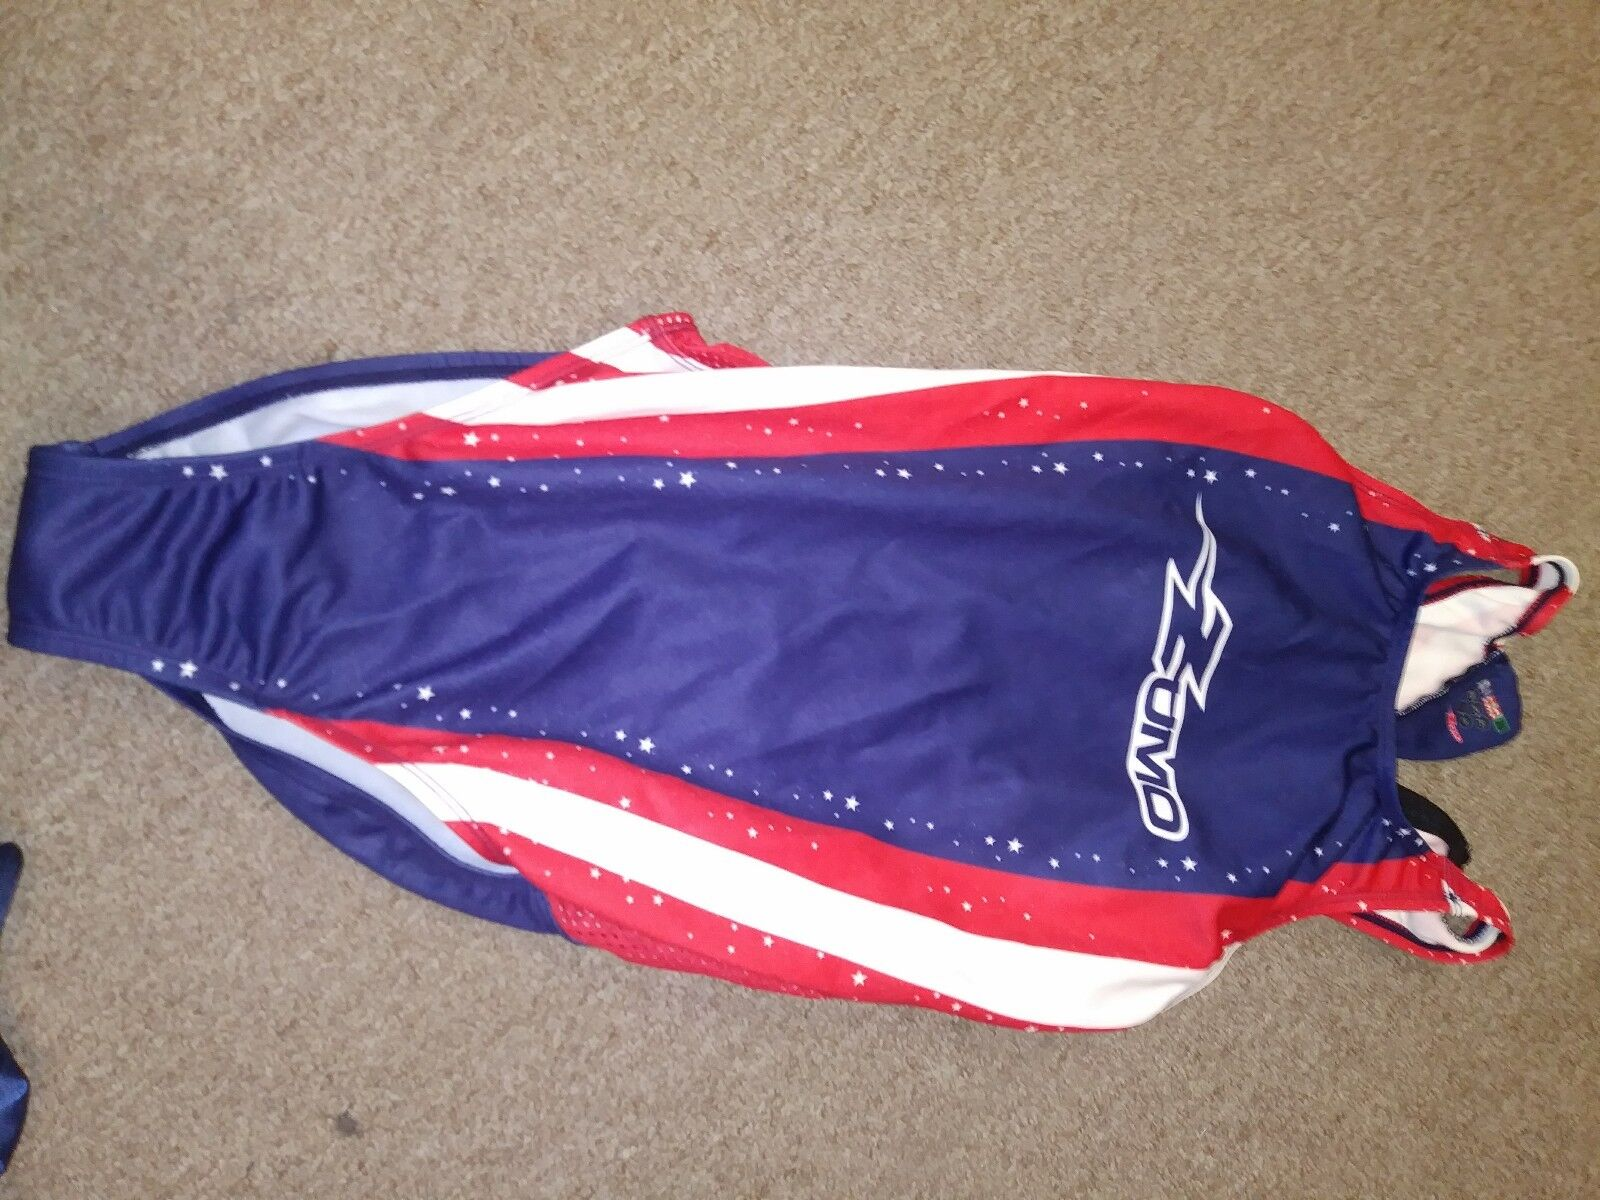 Water Polo Competition Swim Suit,New, by Zumo,Female, Stars & Stripes R W Navy